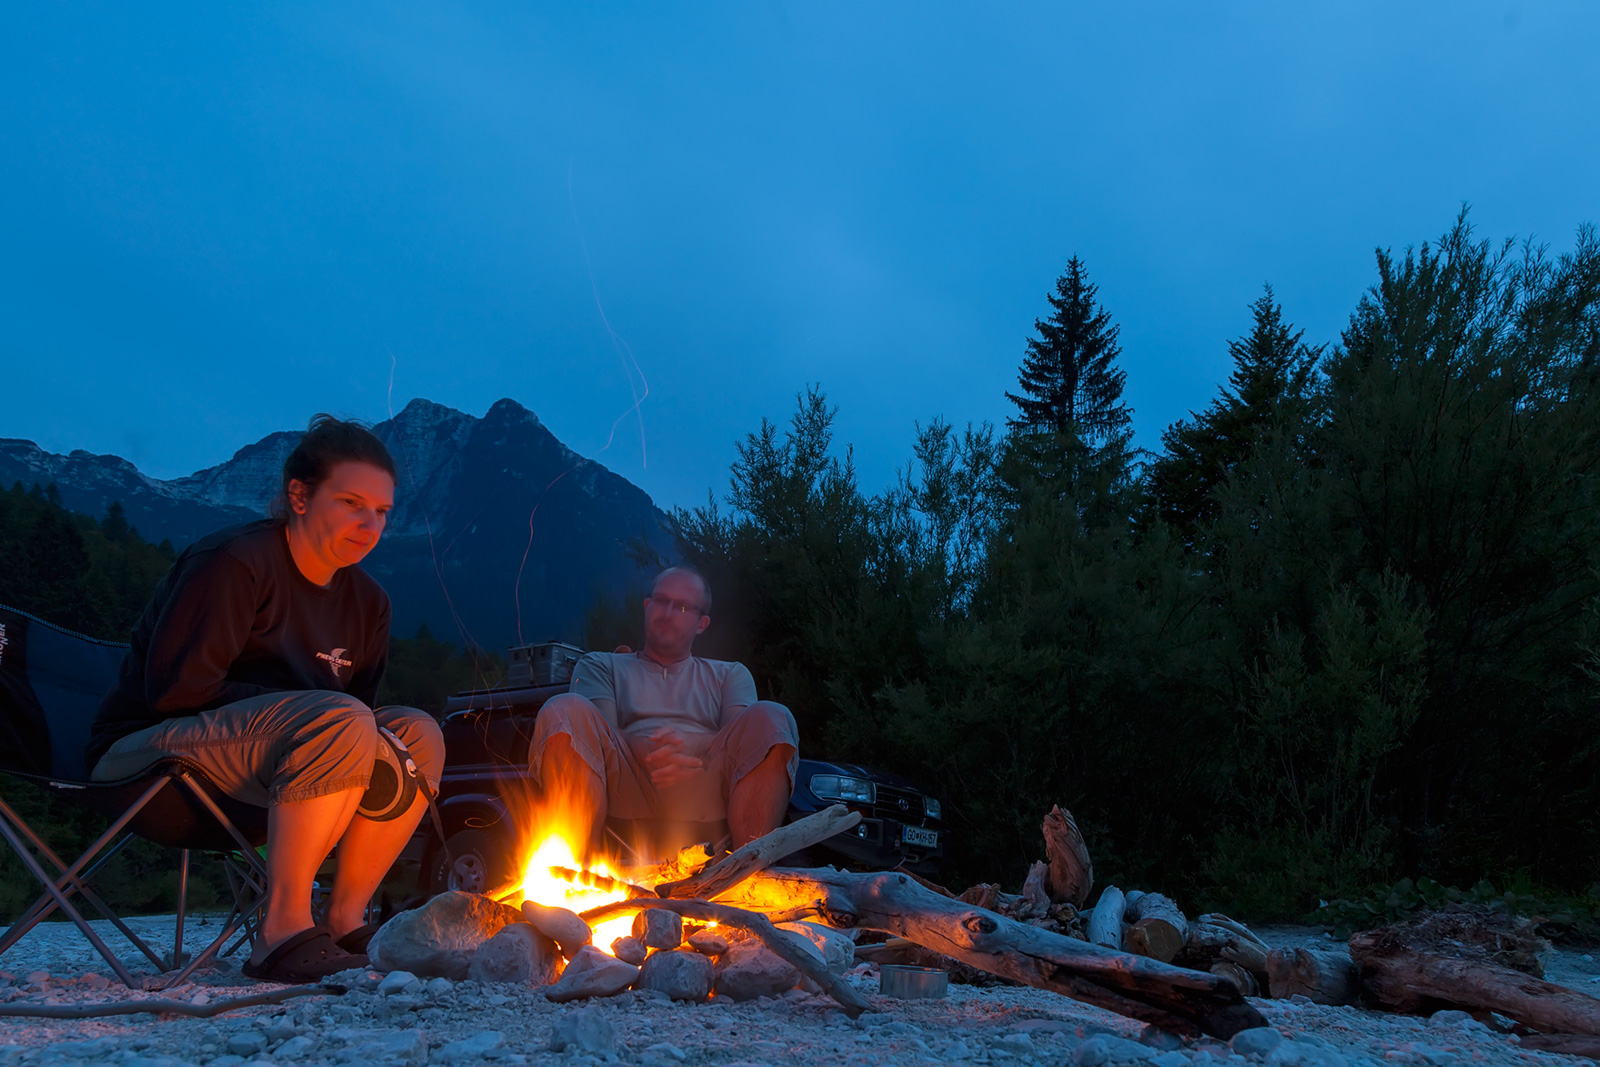 No bivouac is perfect without fire.